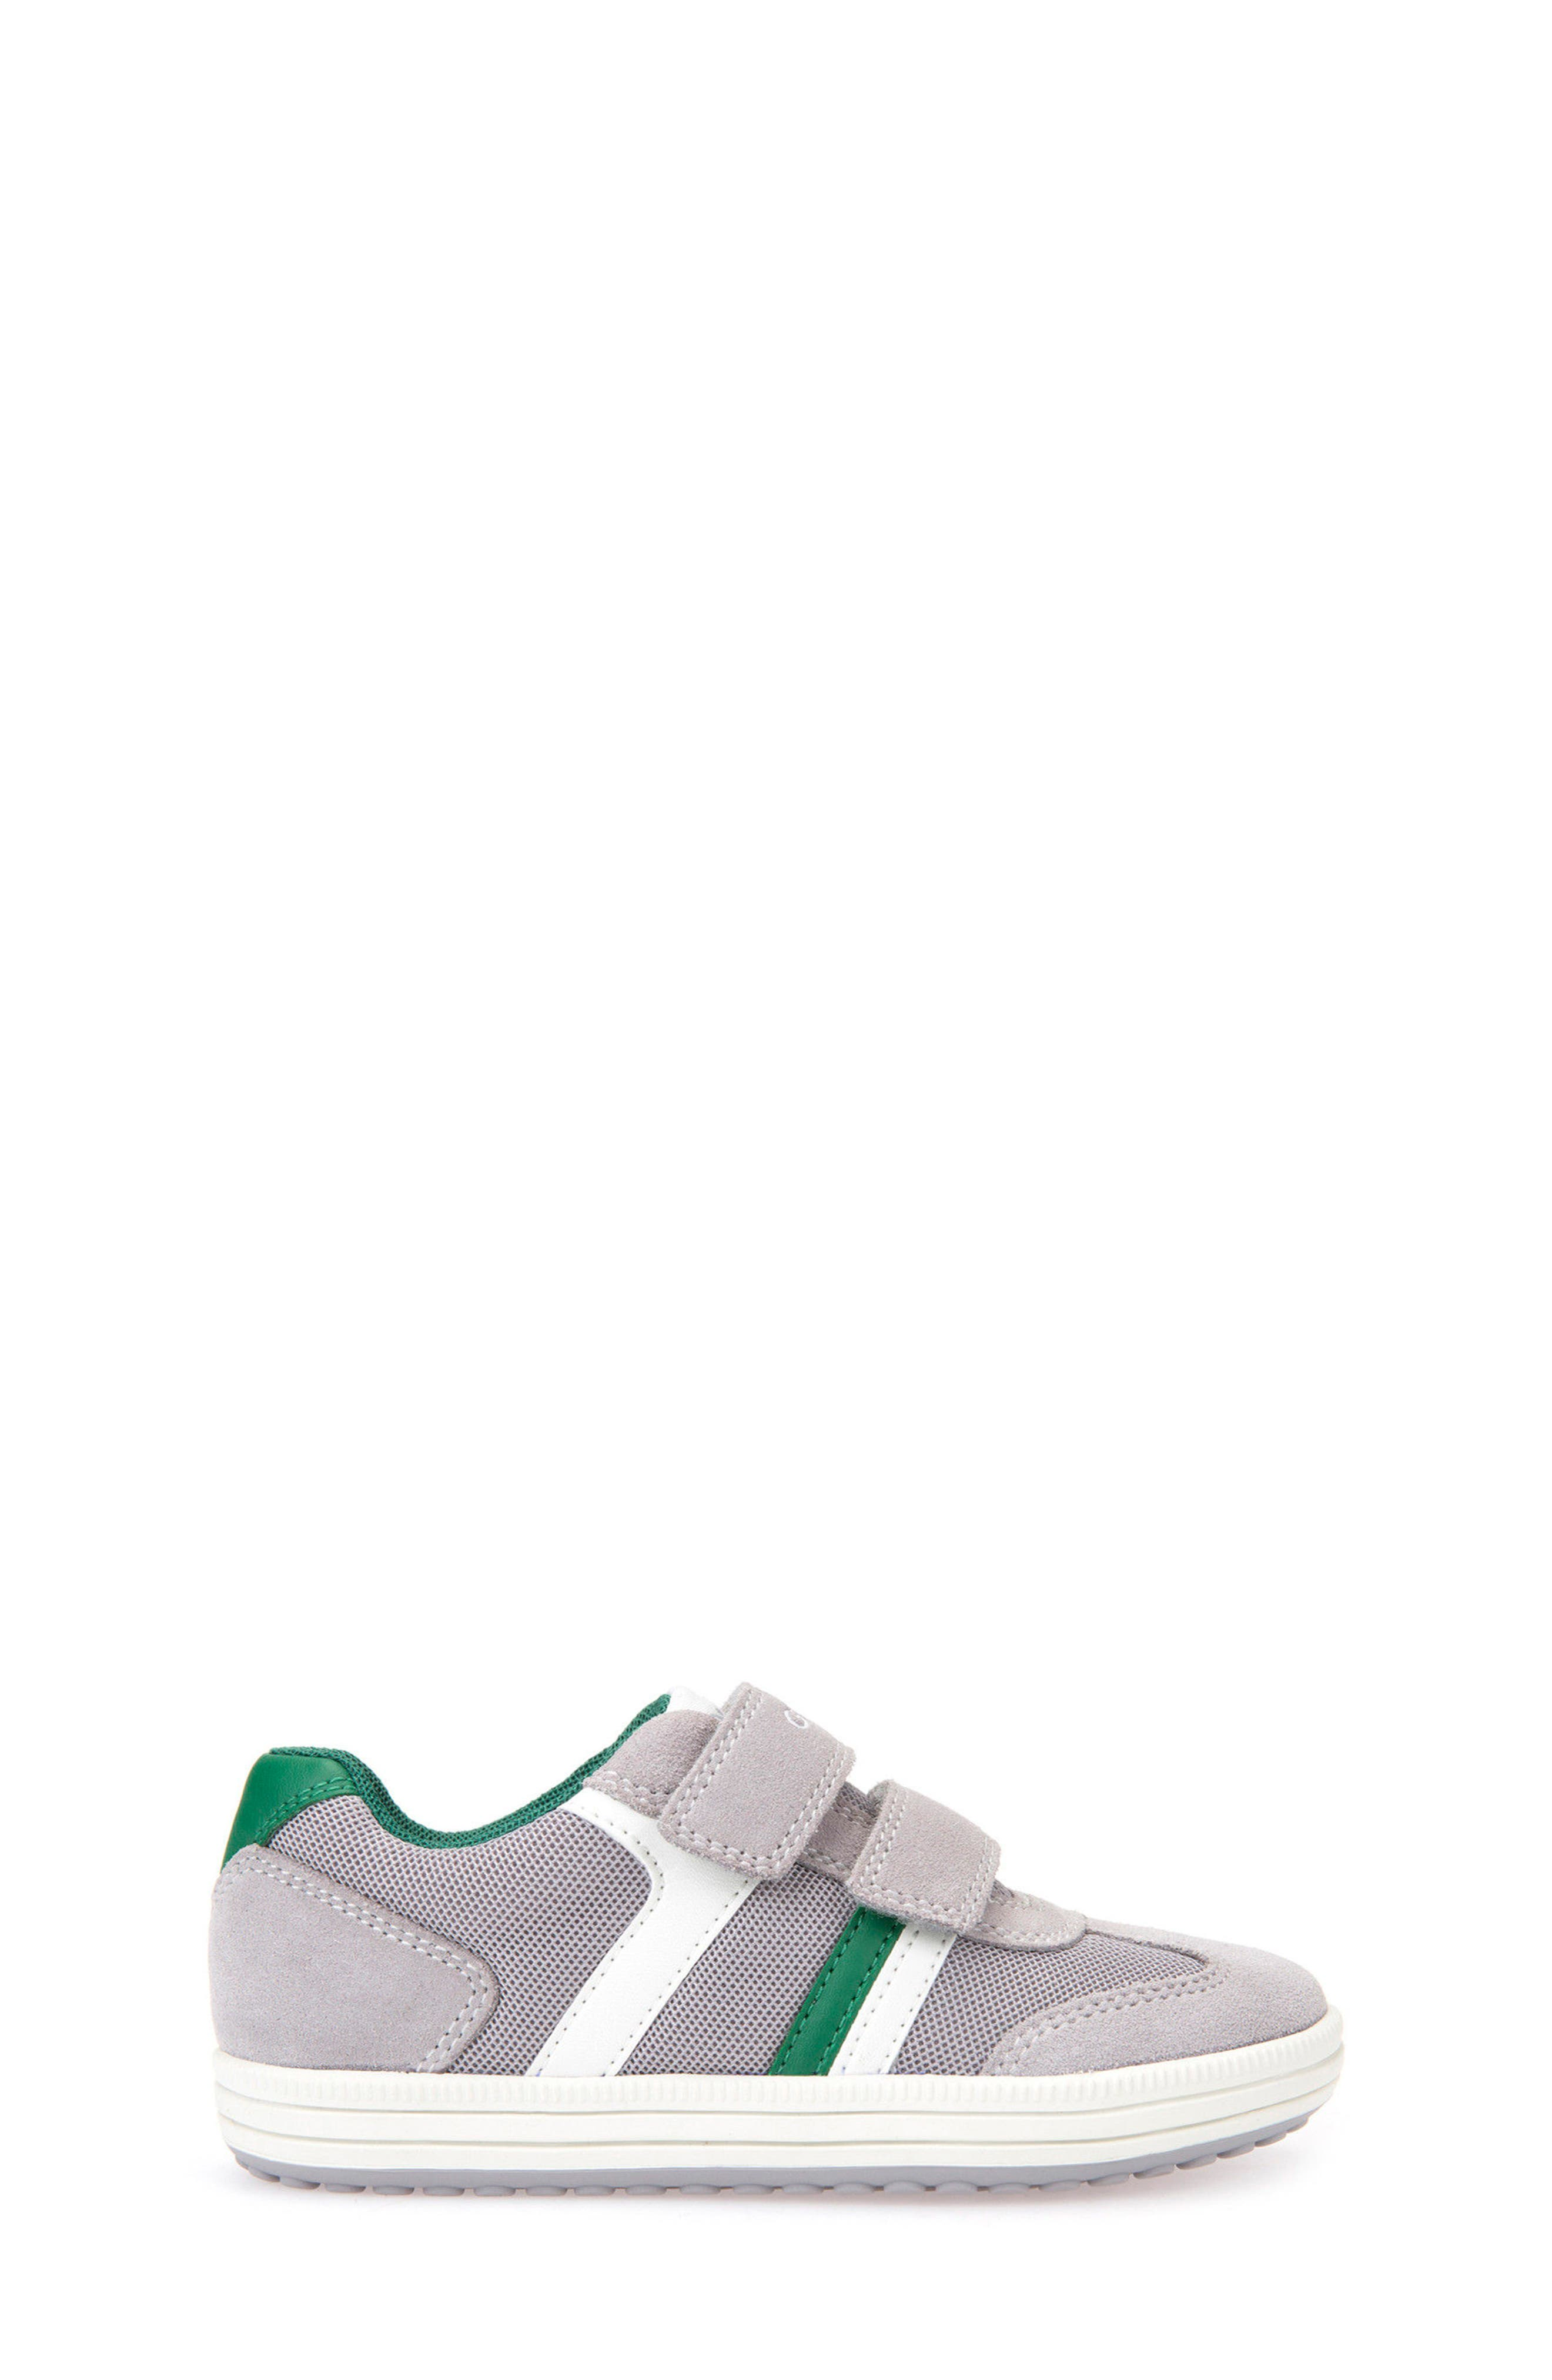 GEOX,                             Kilwi Sneaker,                             Alternate thumbnail 3, color,                             068